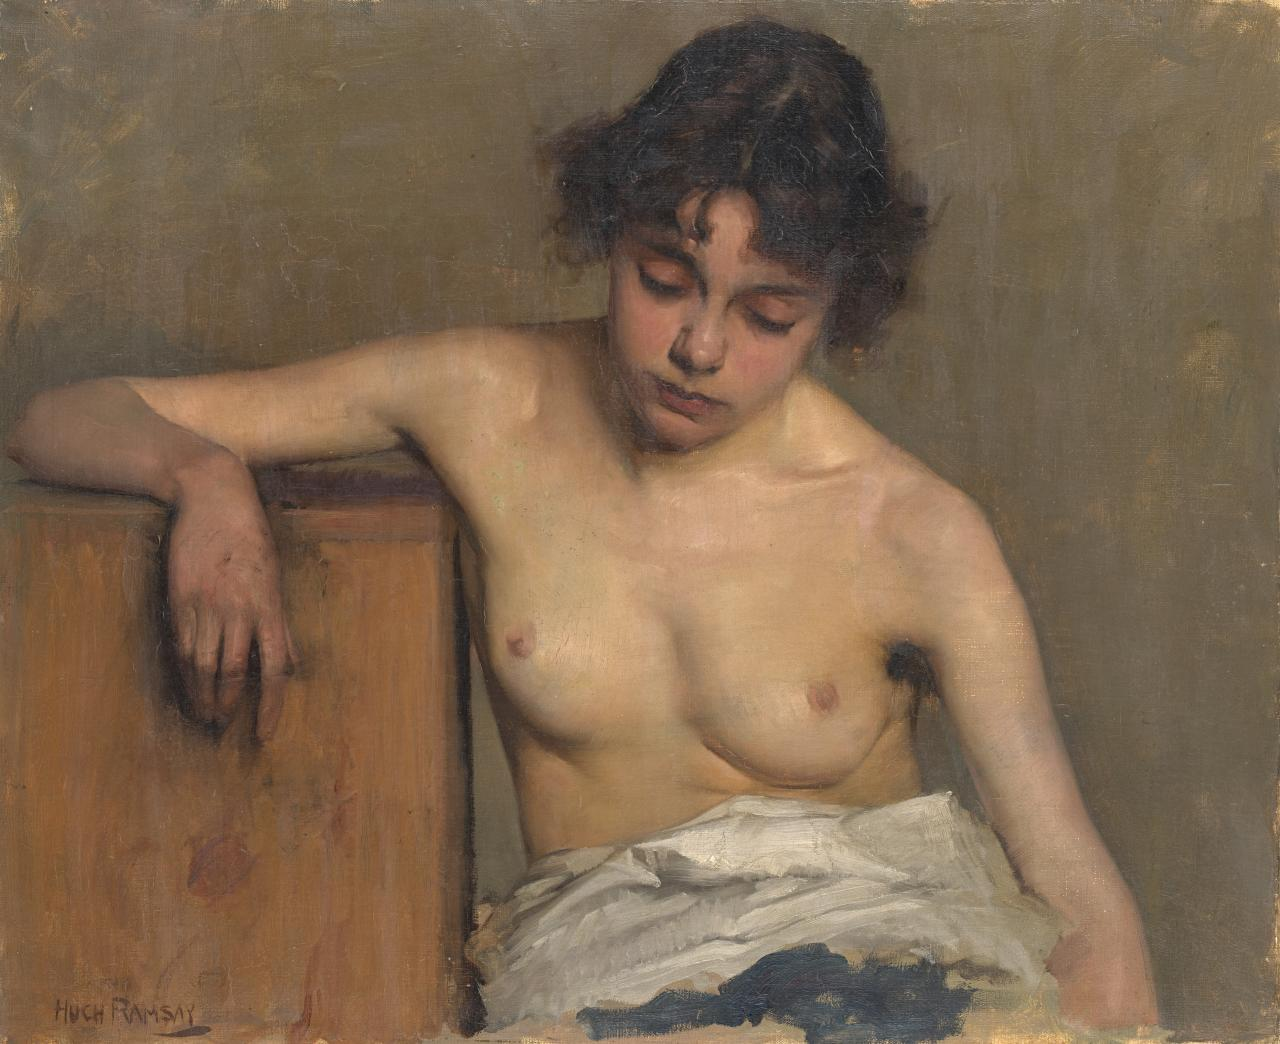 (Study of a girl, half-nude, leaning on box)